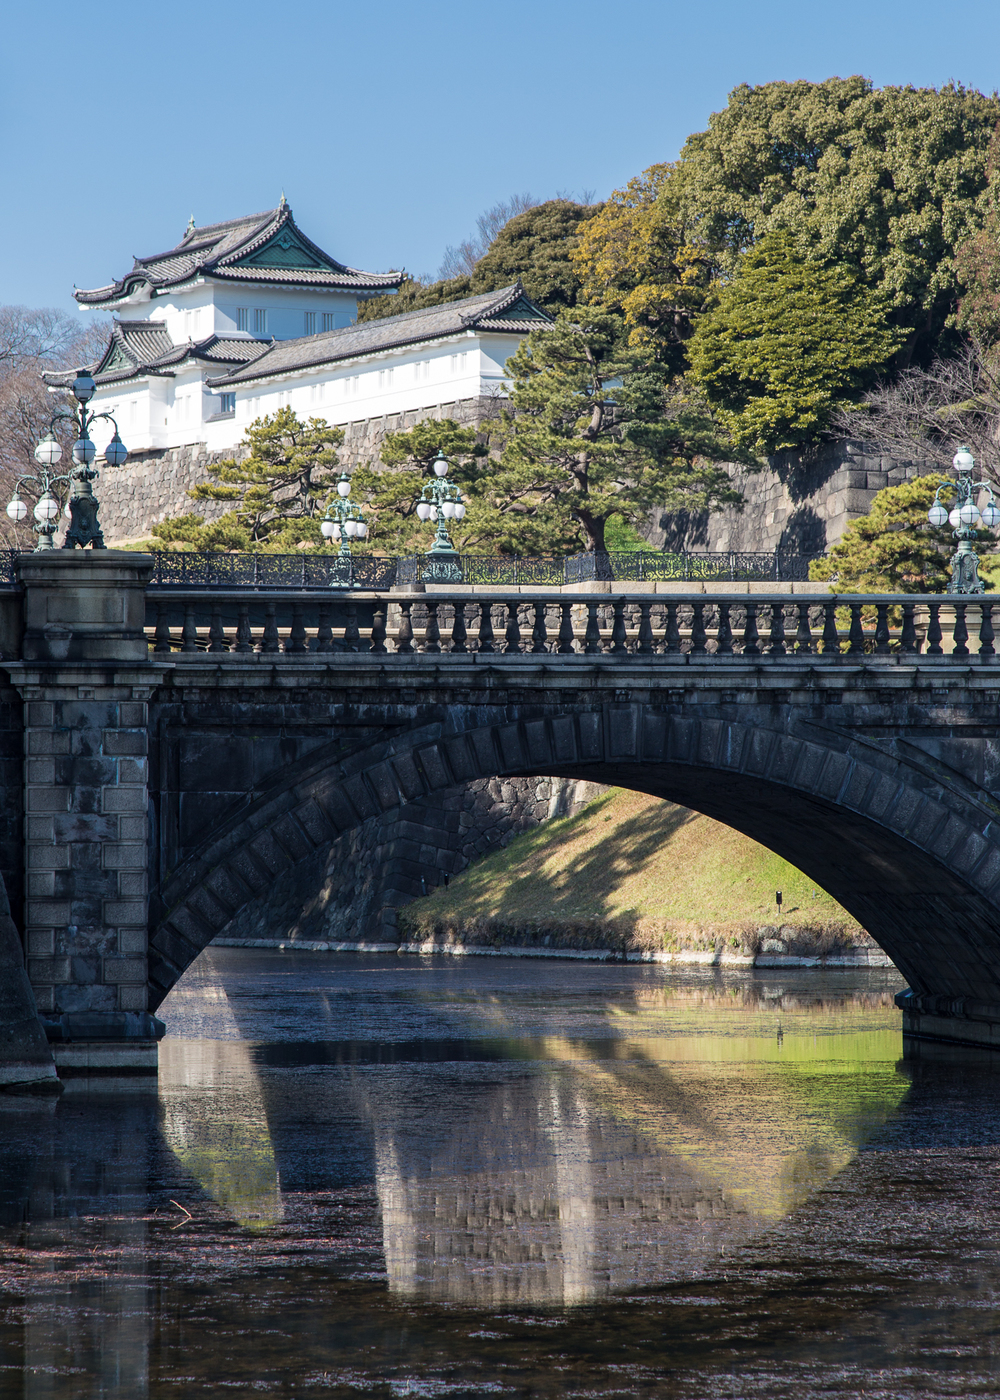 A view of the Imperial Palace